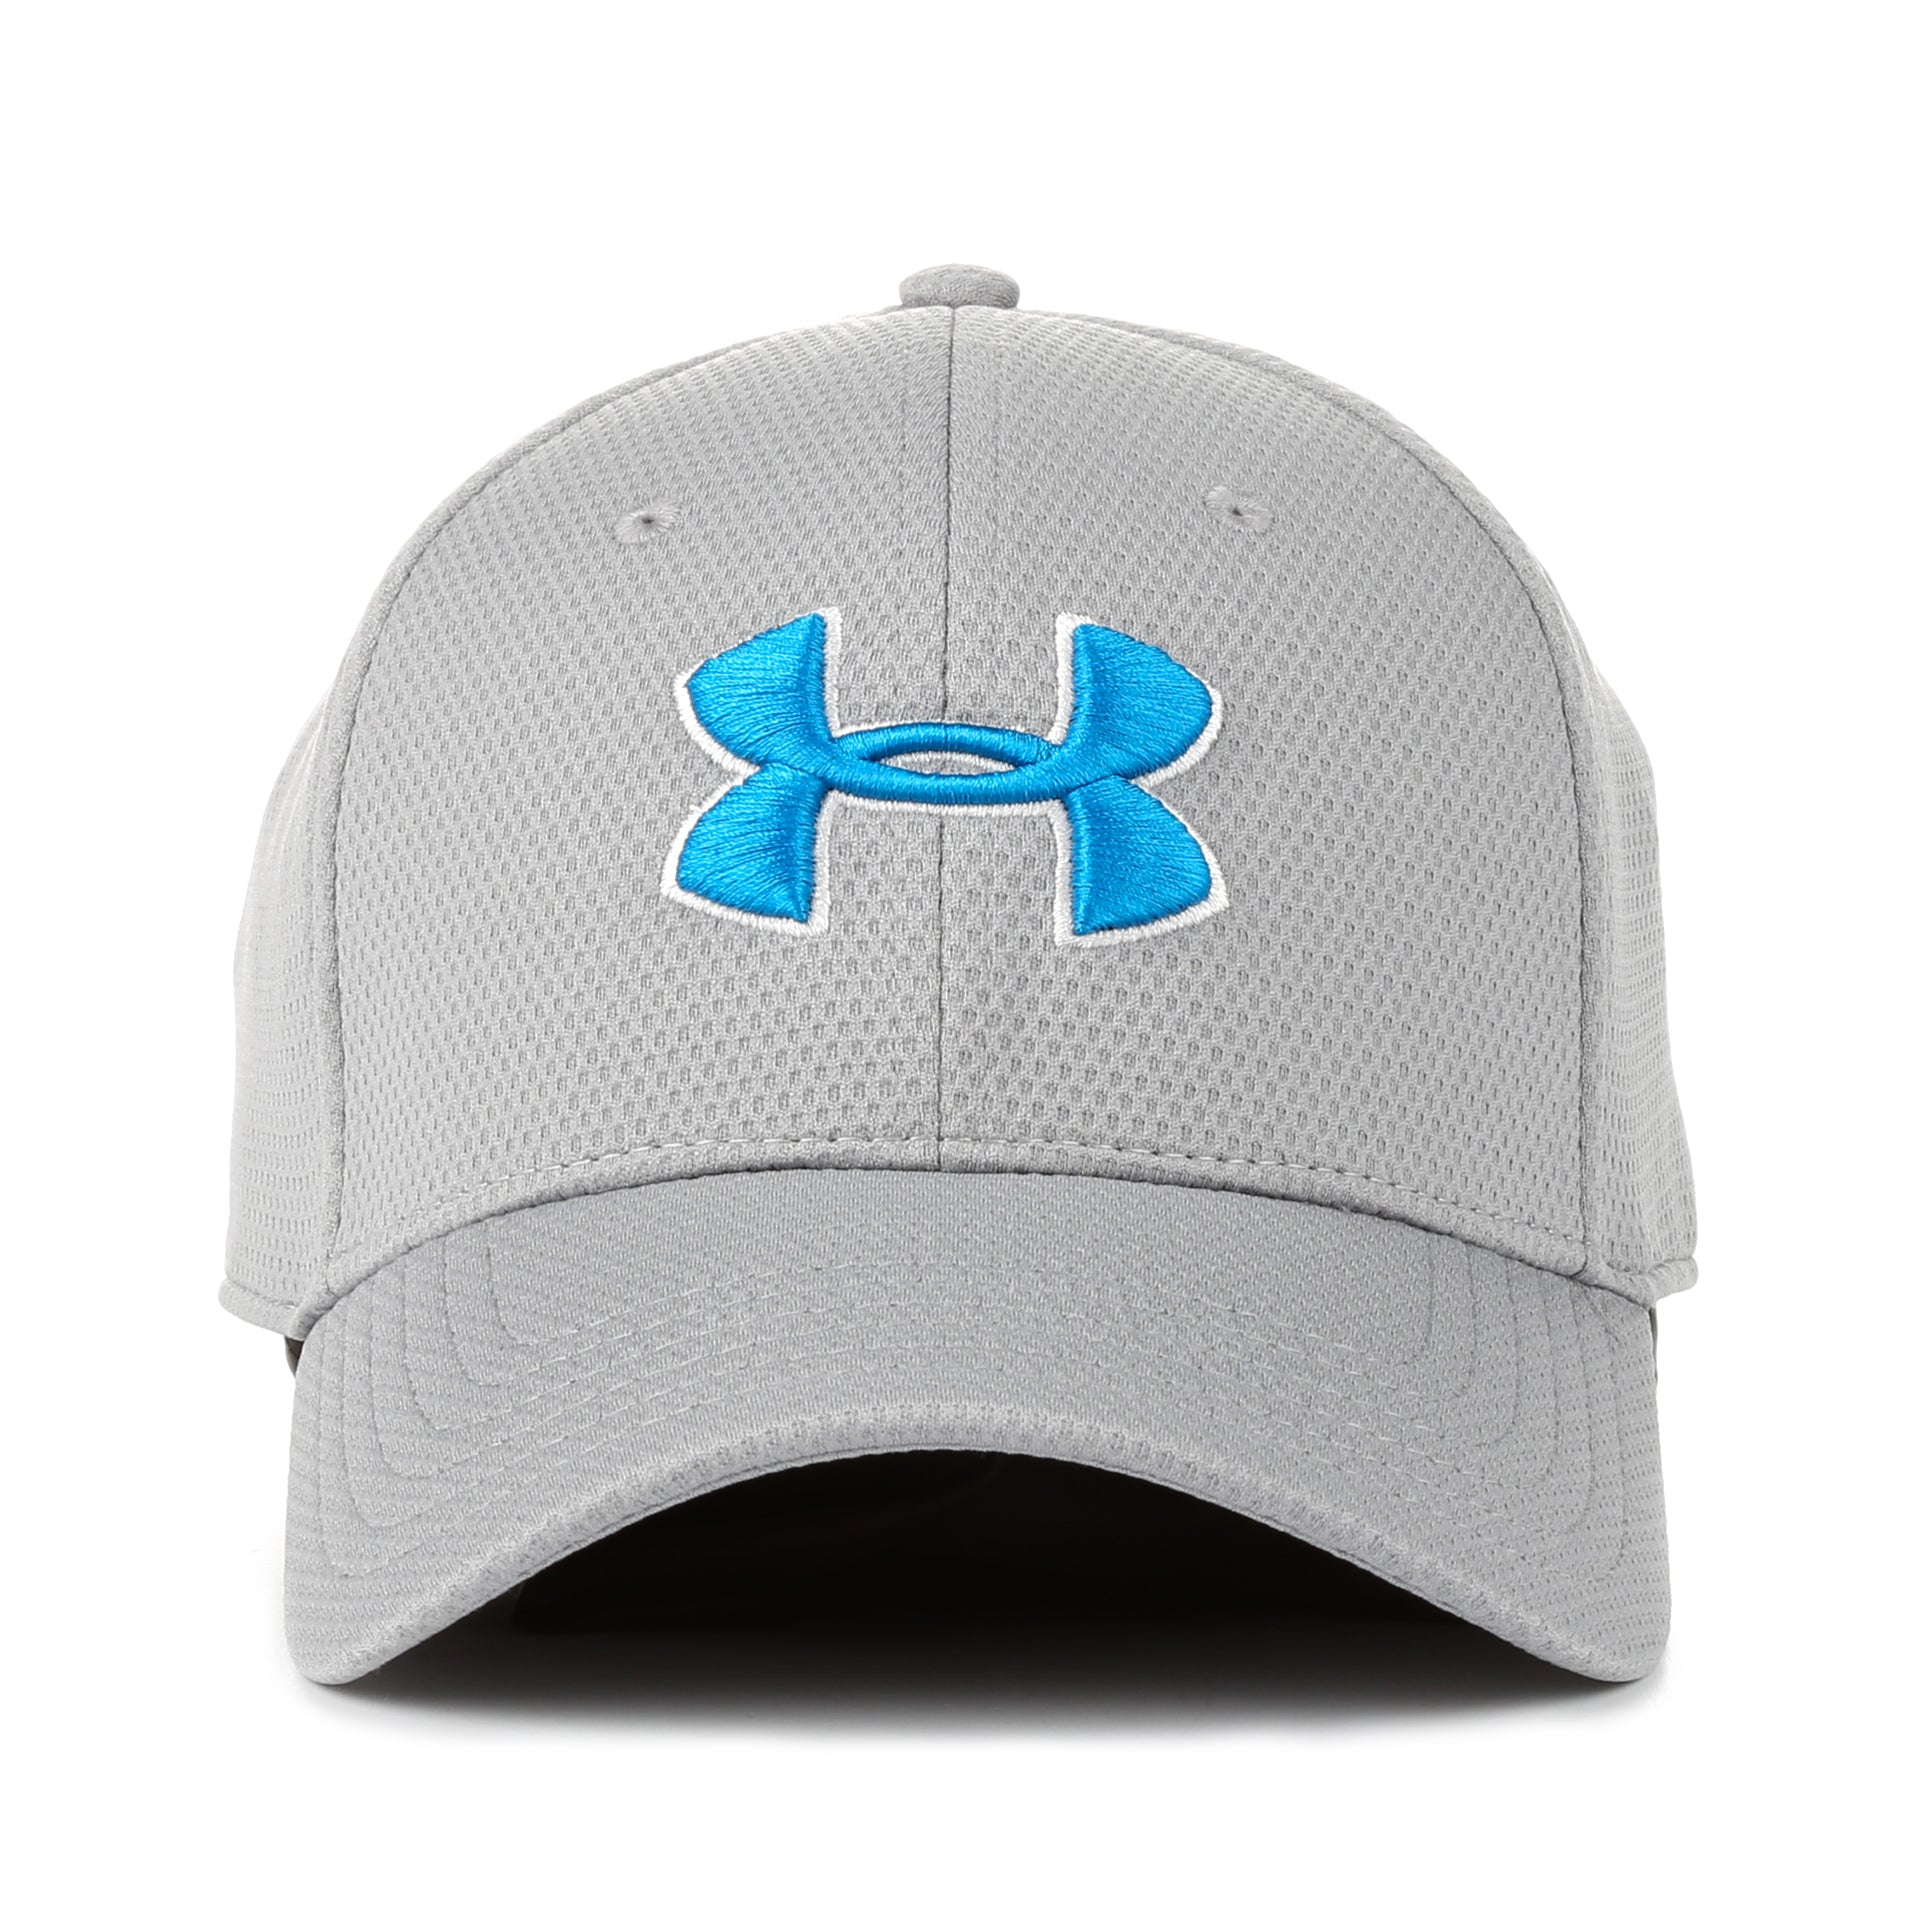 Under Armour Blitzing II Stretch Fit Hat - Glacier Gray - New Star 848117f6008